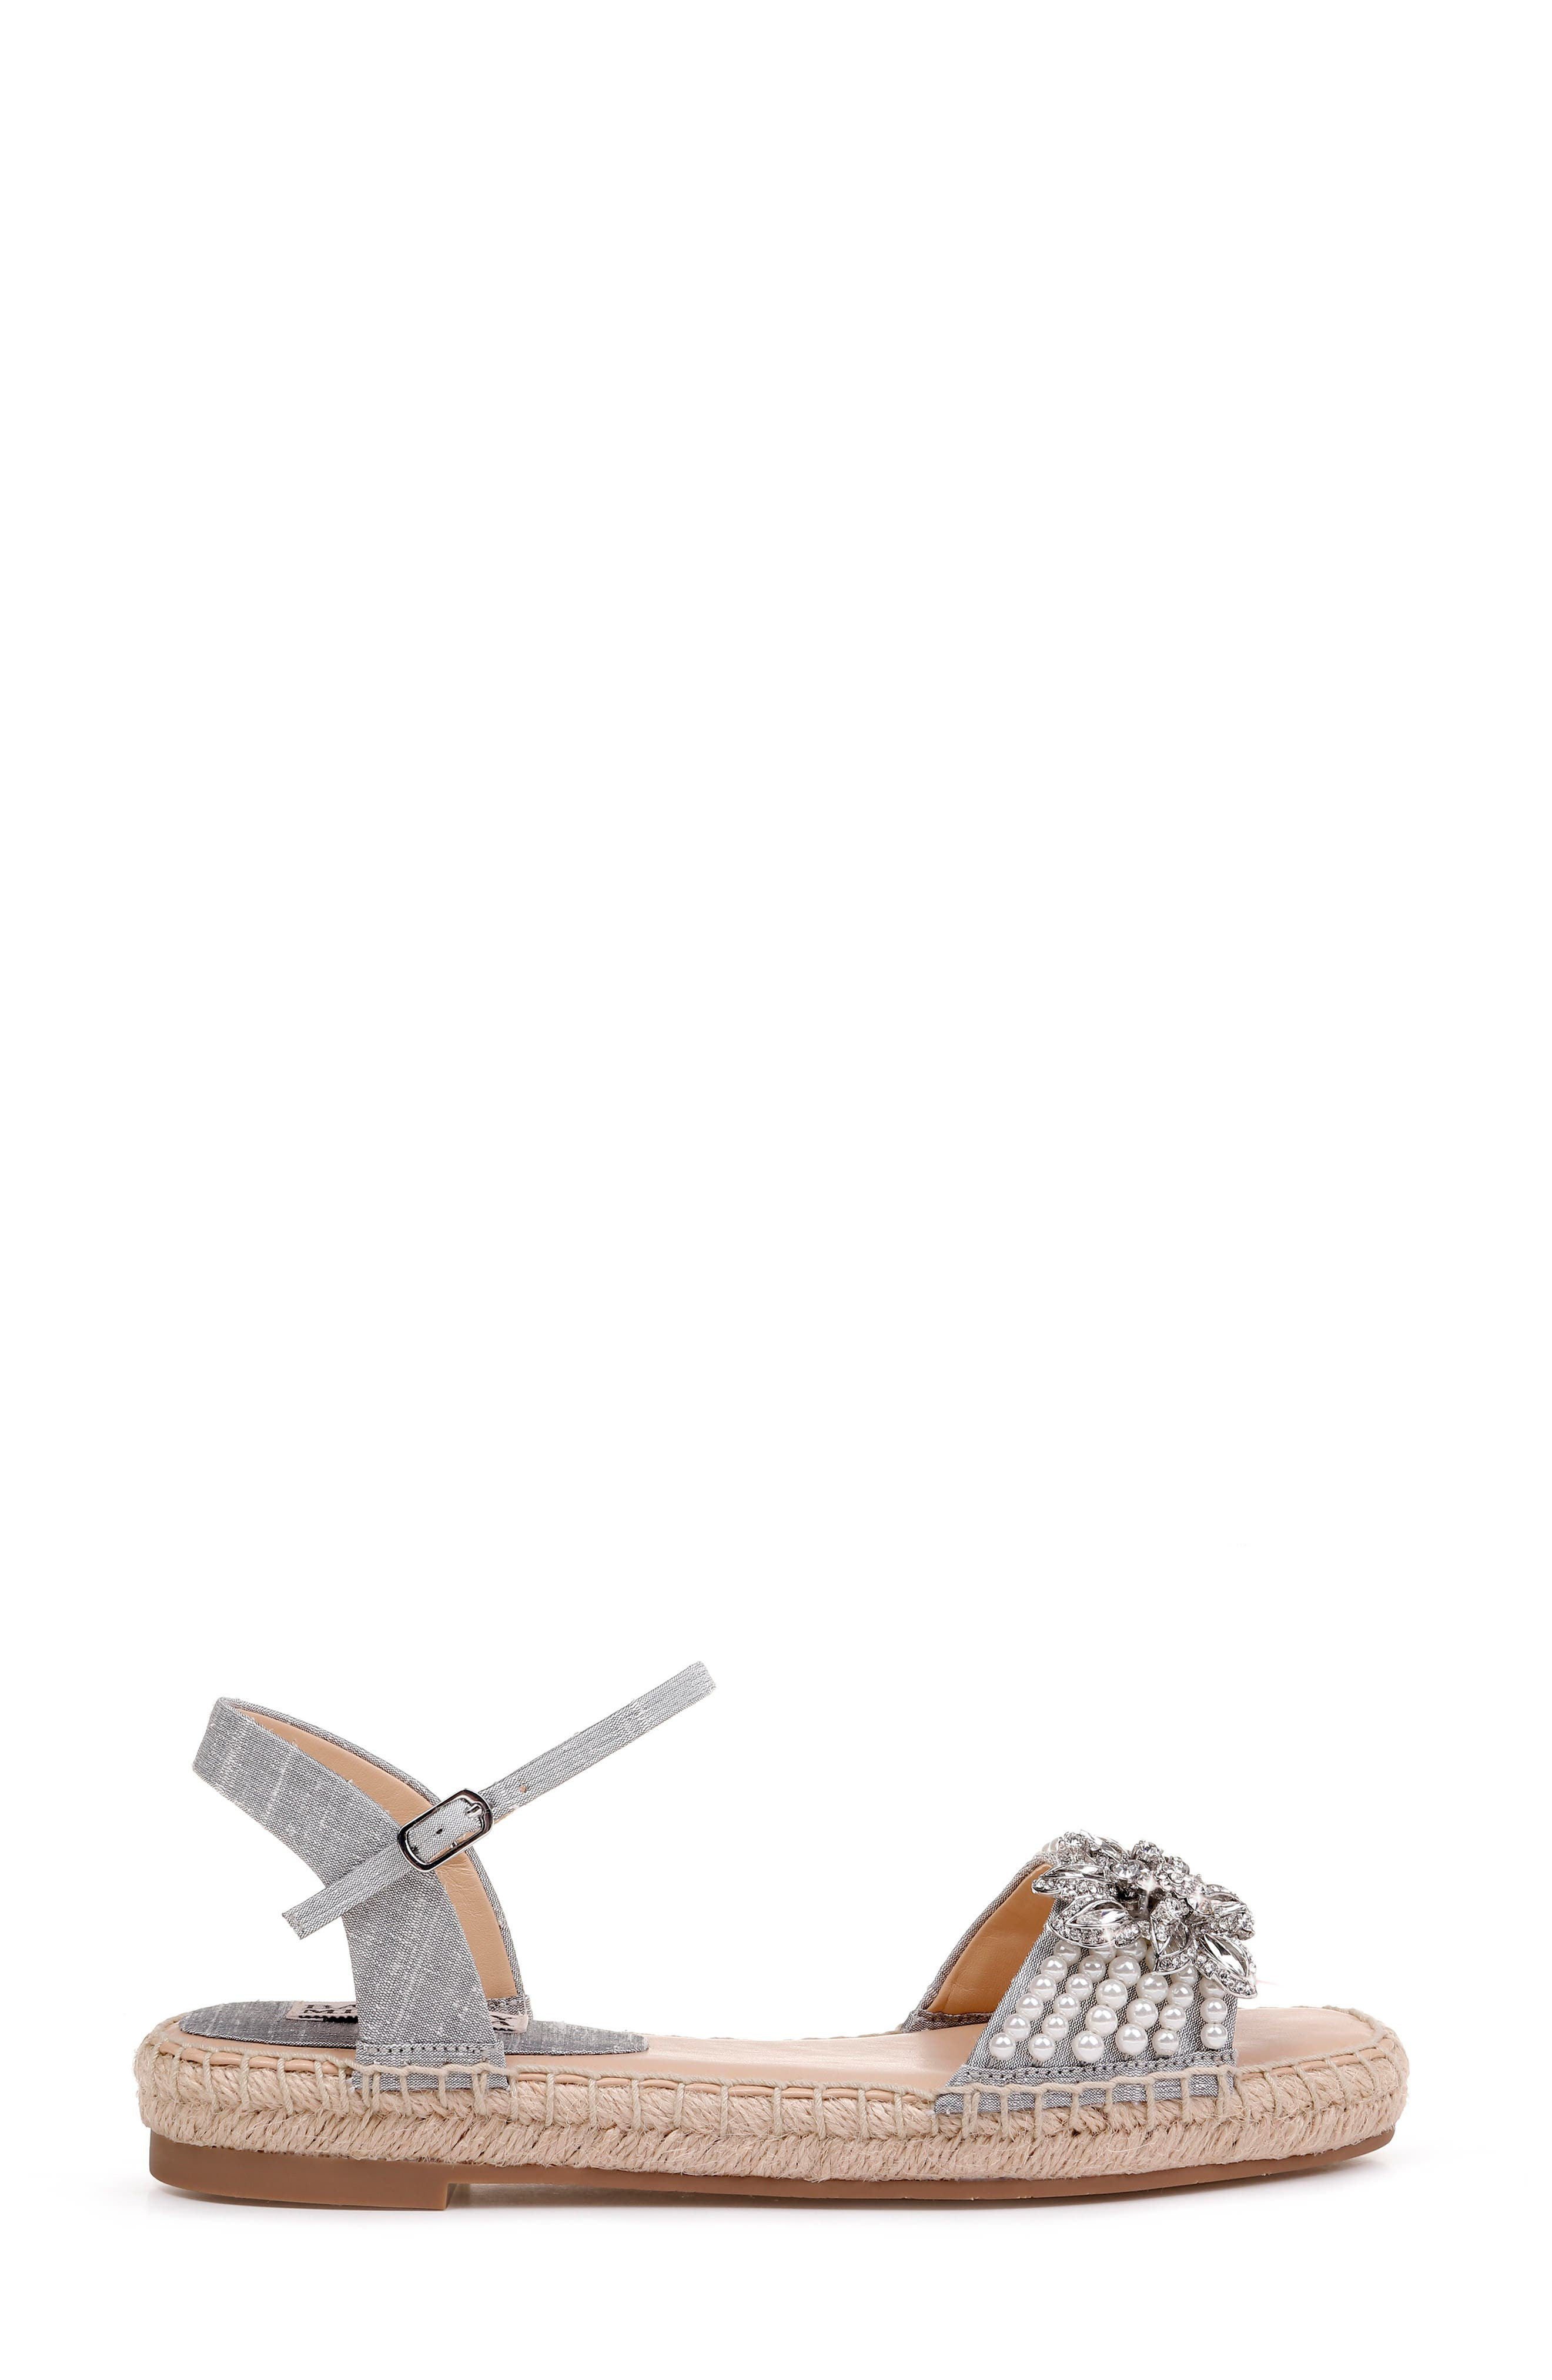 Badgley Mischka Leandra Espadrille Sandal,                             Alternate thumbnail 3, color,                             SILVER FABRIC